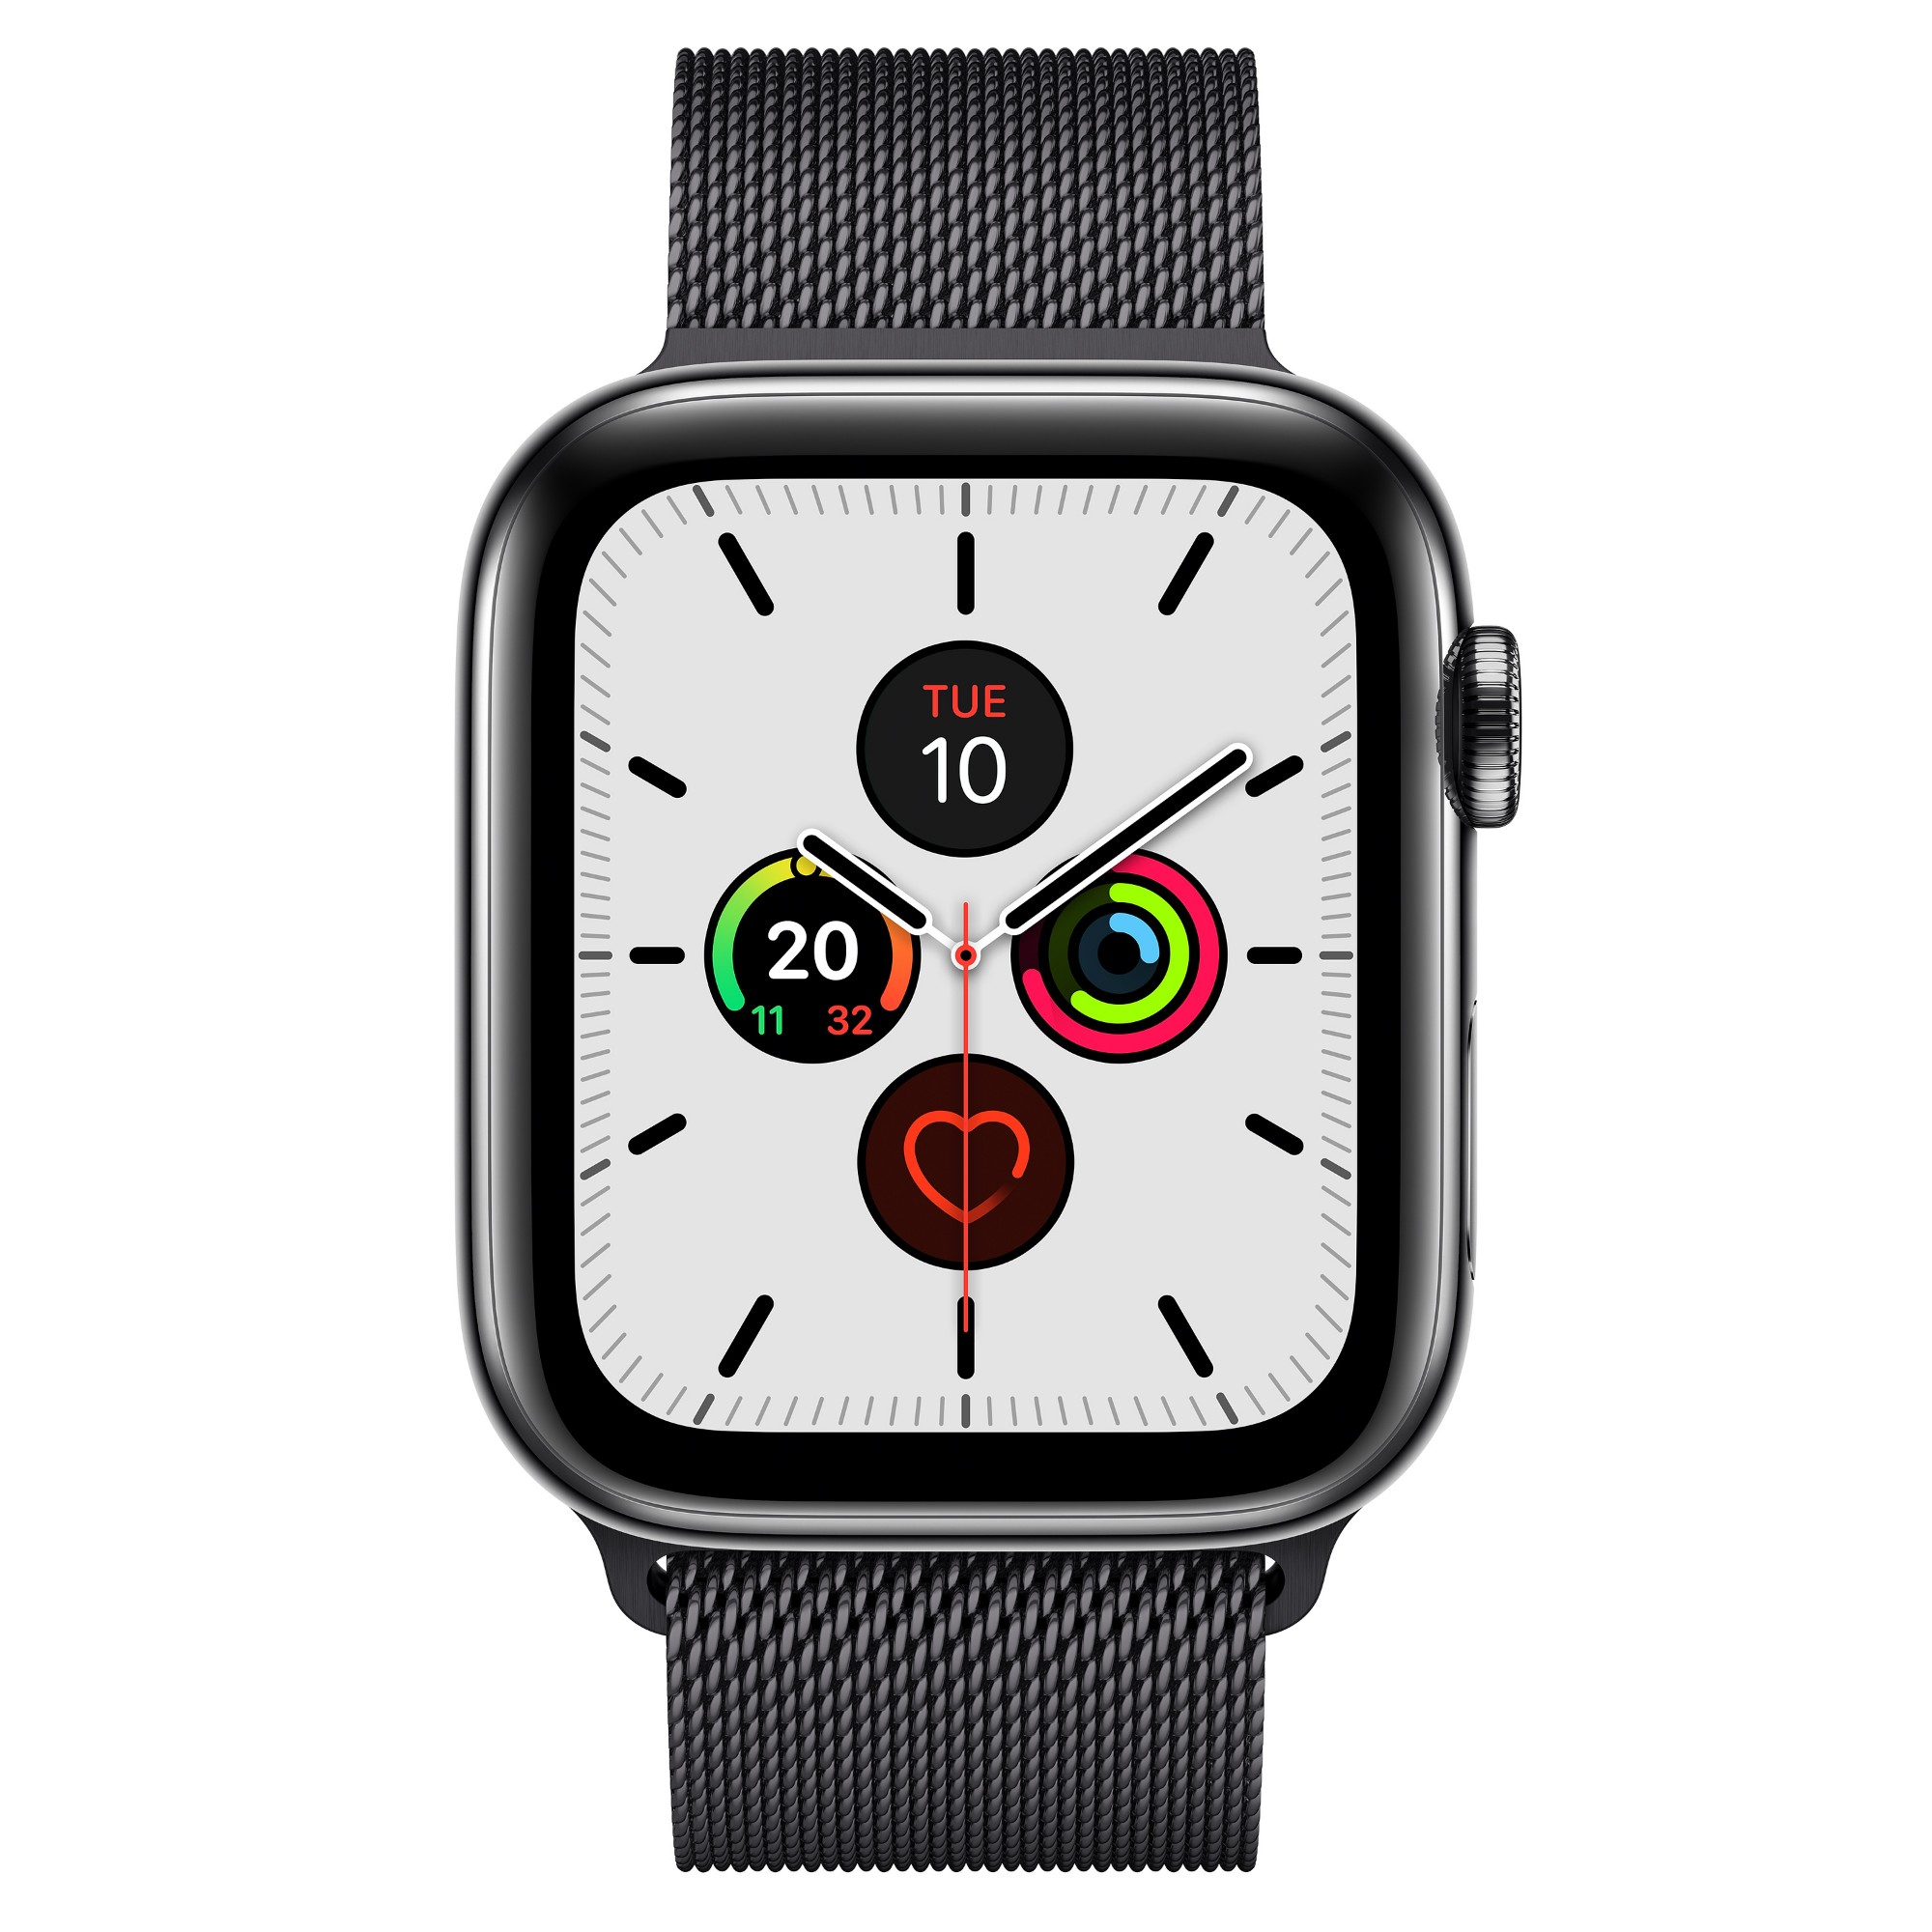 Apple Watch Series 5 smartwatch Black OLED Cellular GPS (satellite)